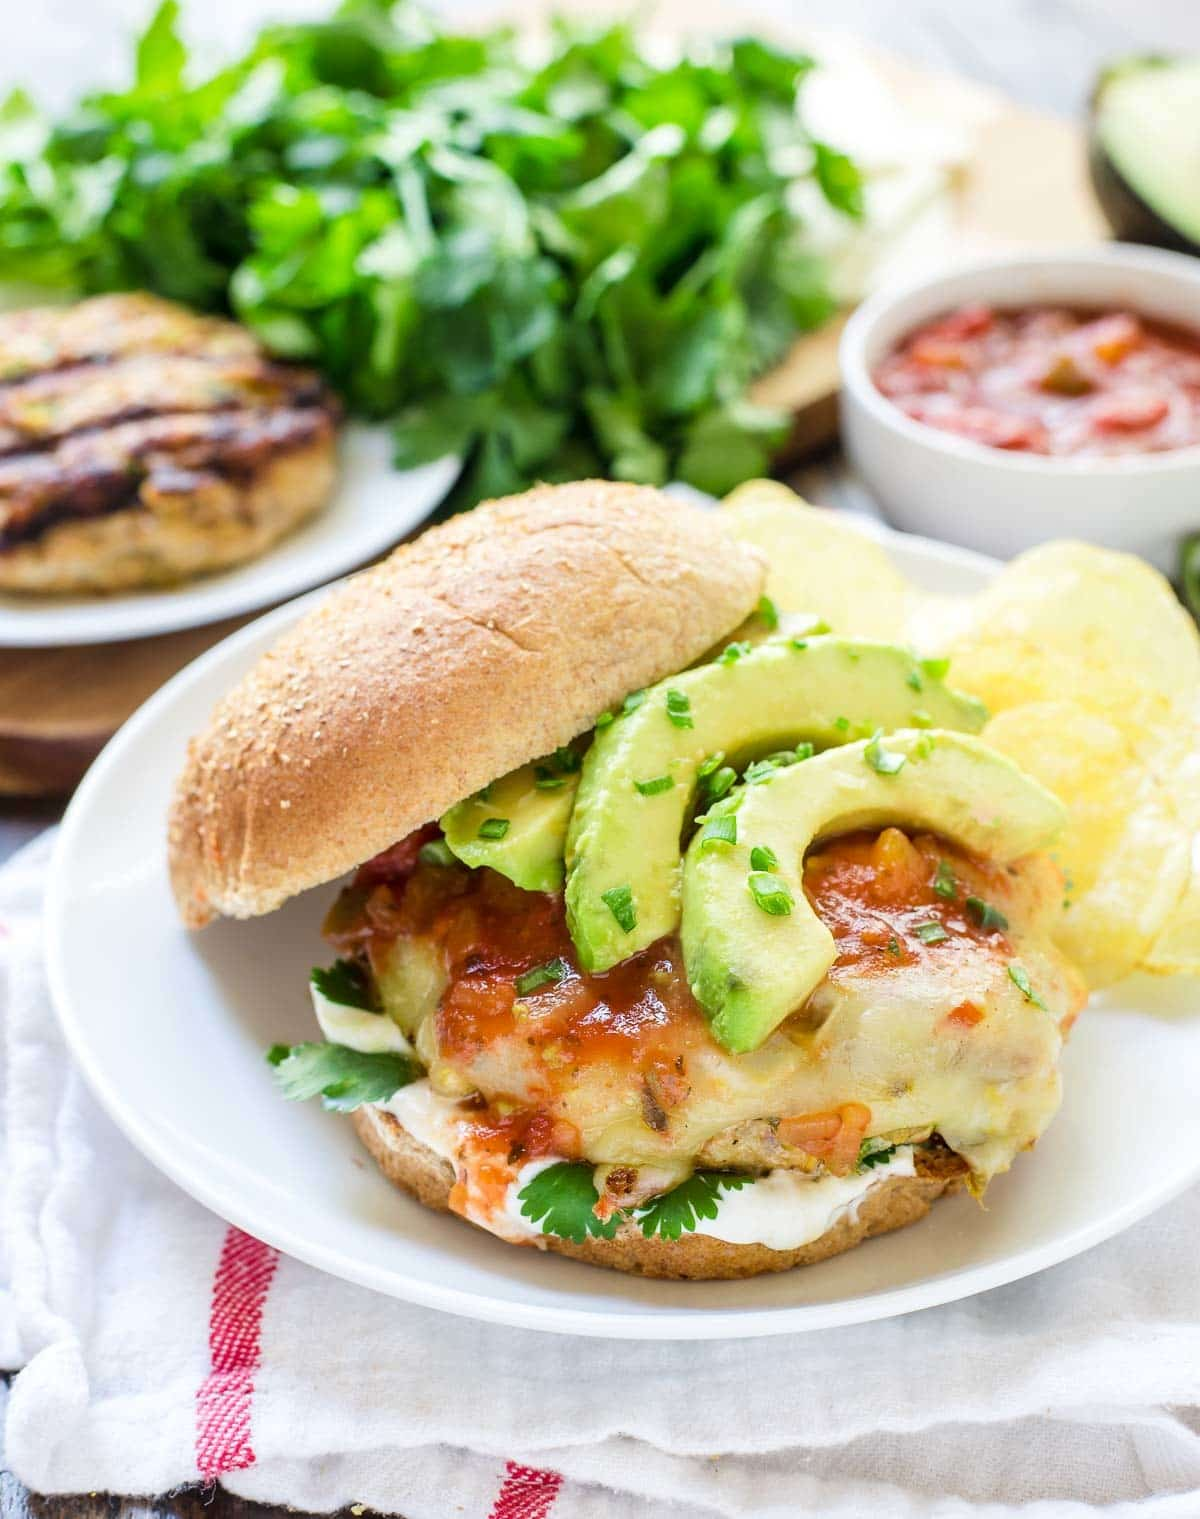 This juicy Green Chile Grilled Chicken Burger recipe is my go-to for healthy summer meals. The patties are SO MOIST. Easy, and our whole family loves it!